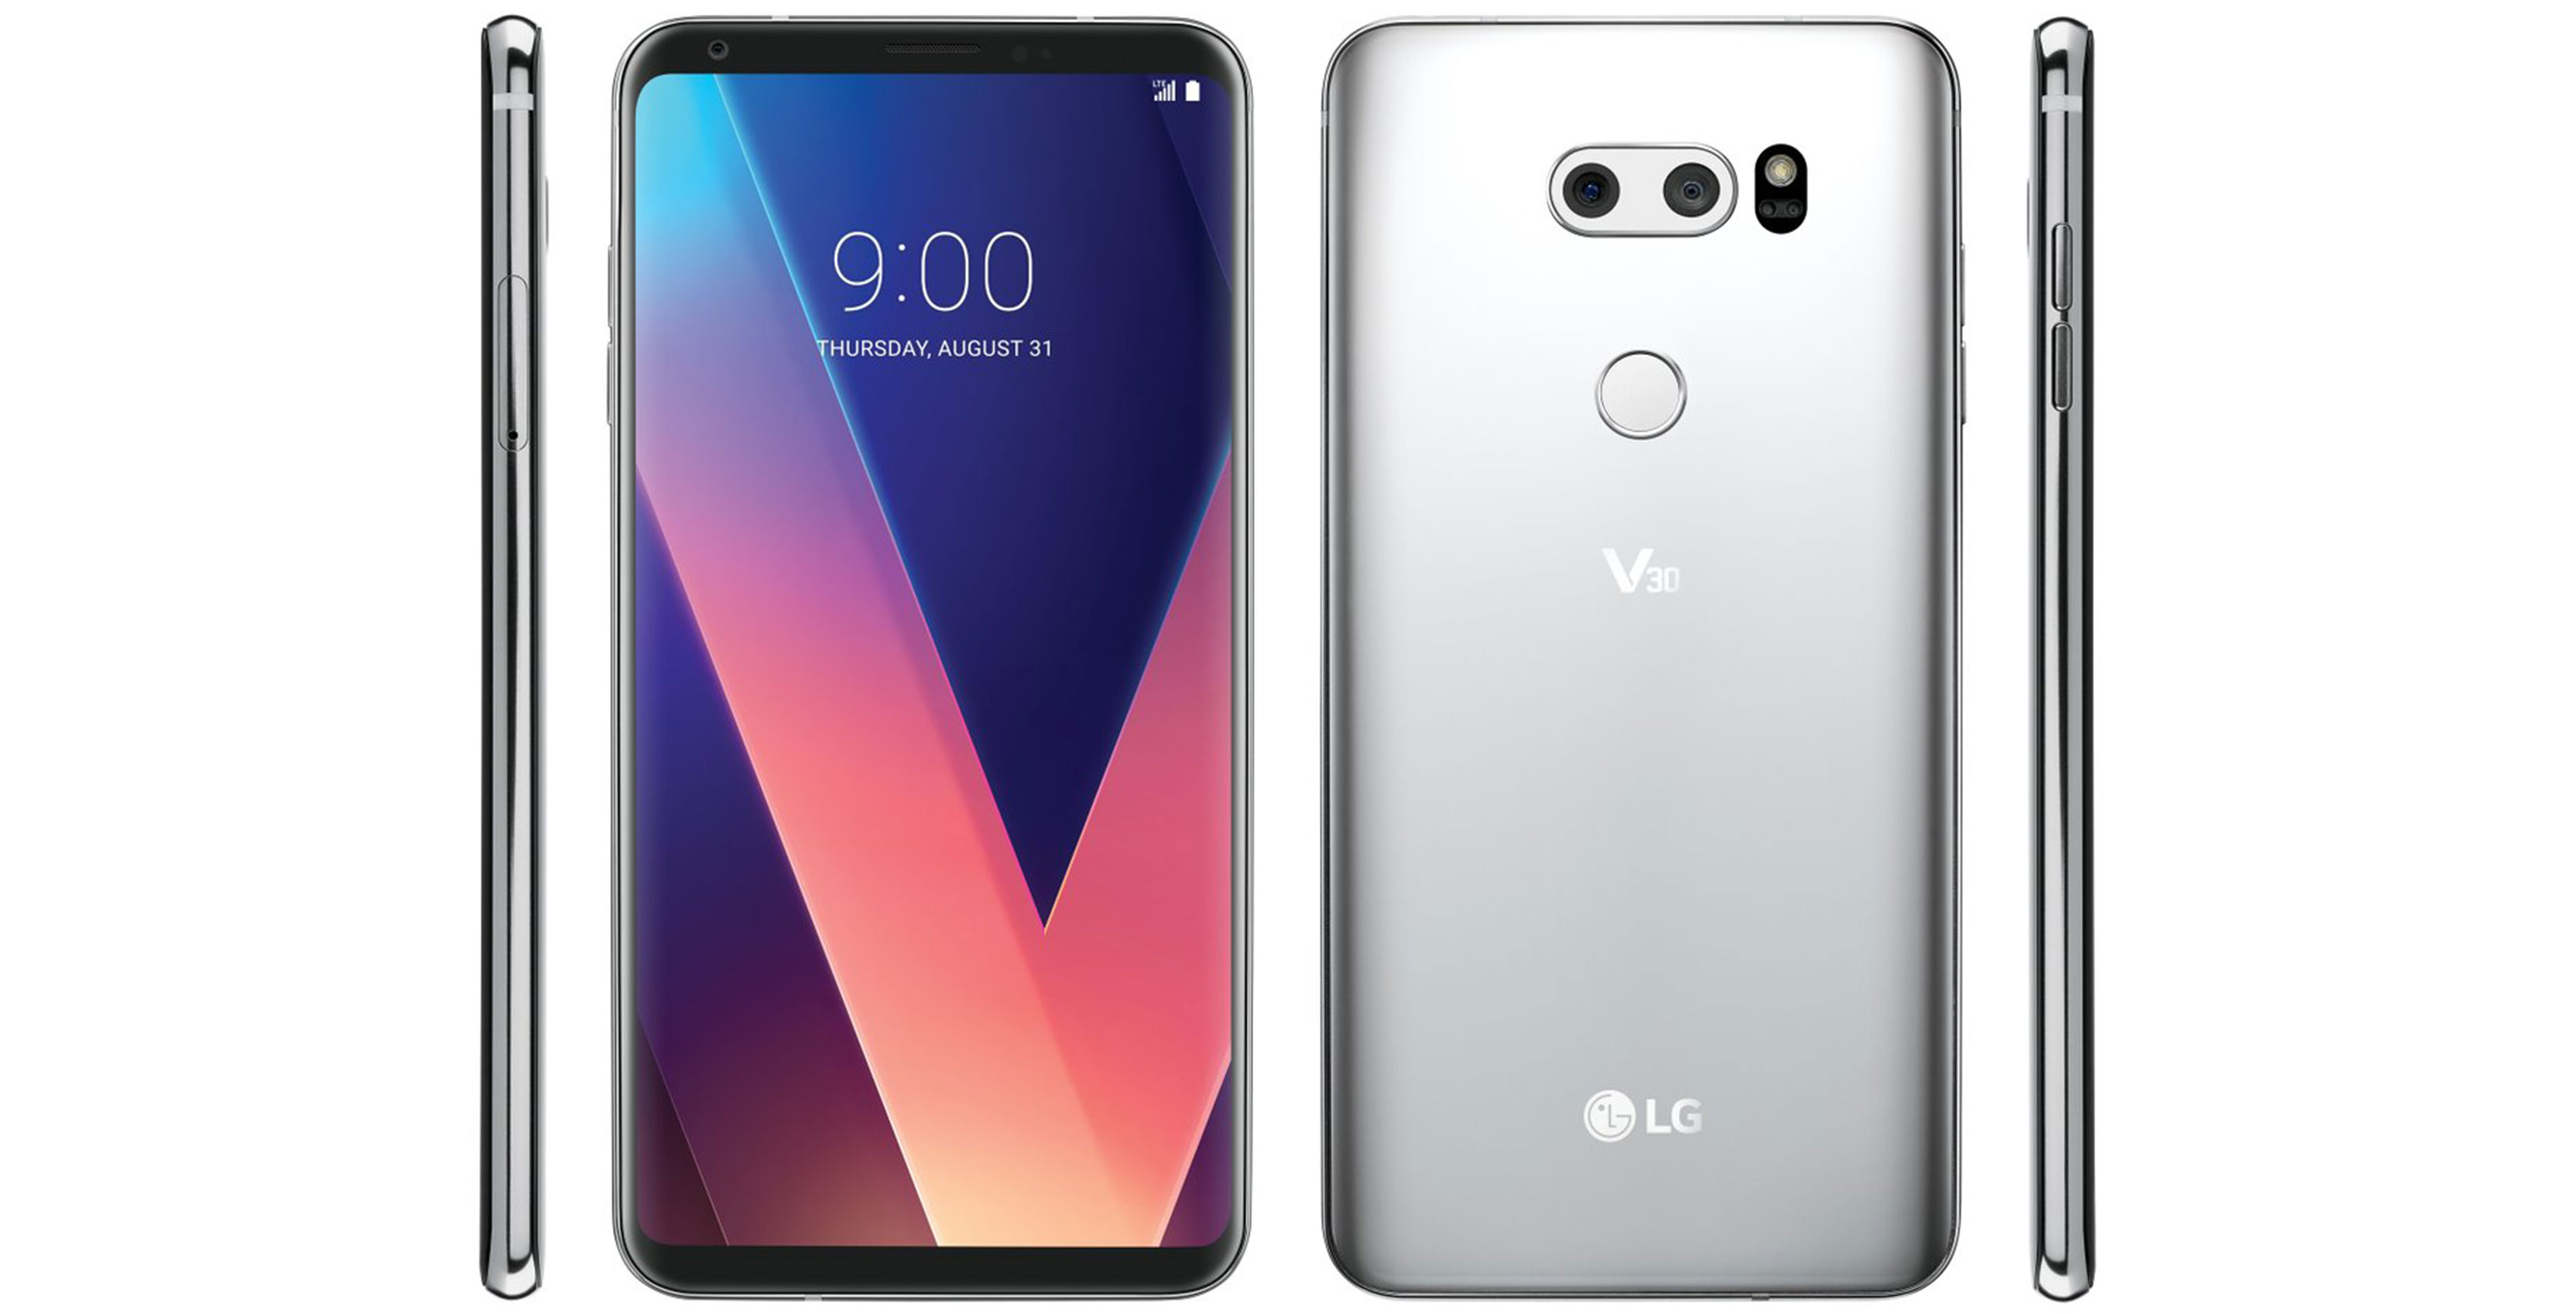 Simple mobile america - LG V30's dual cameras take a tip from DSLR cameras